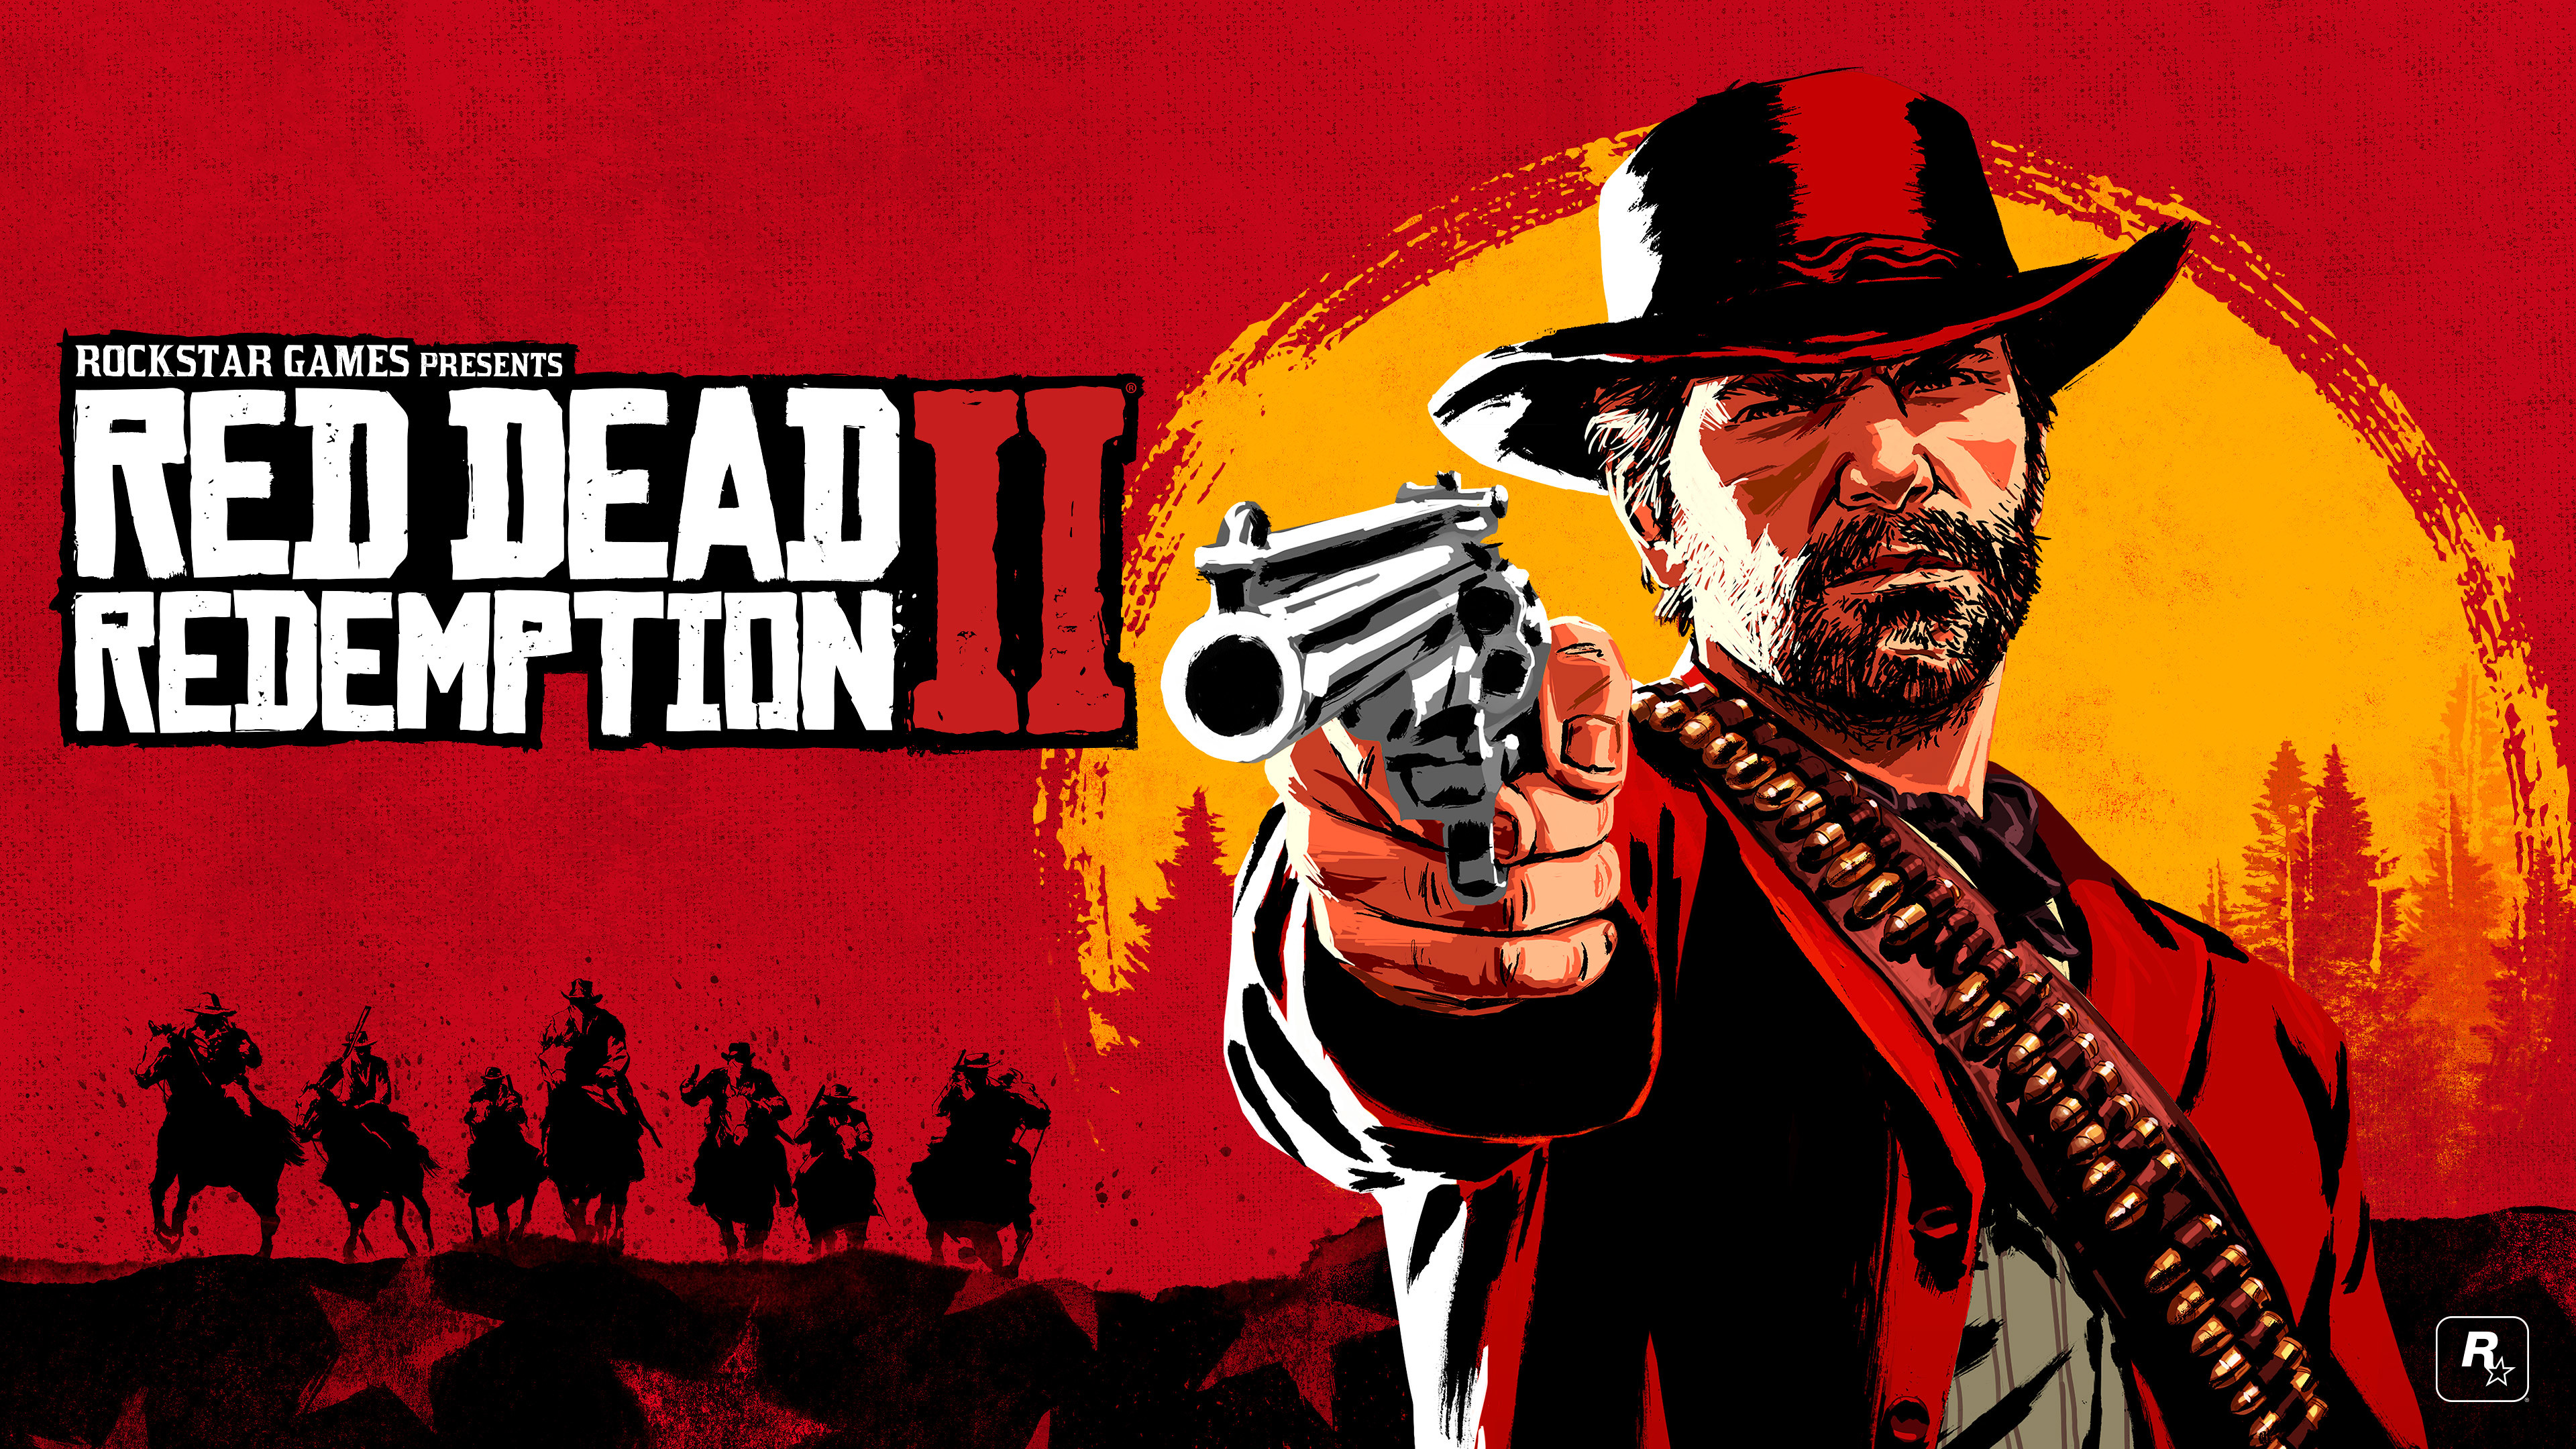 Red Dead Redemption Wallpaper 1920x1080 Wallpapertag